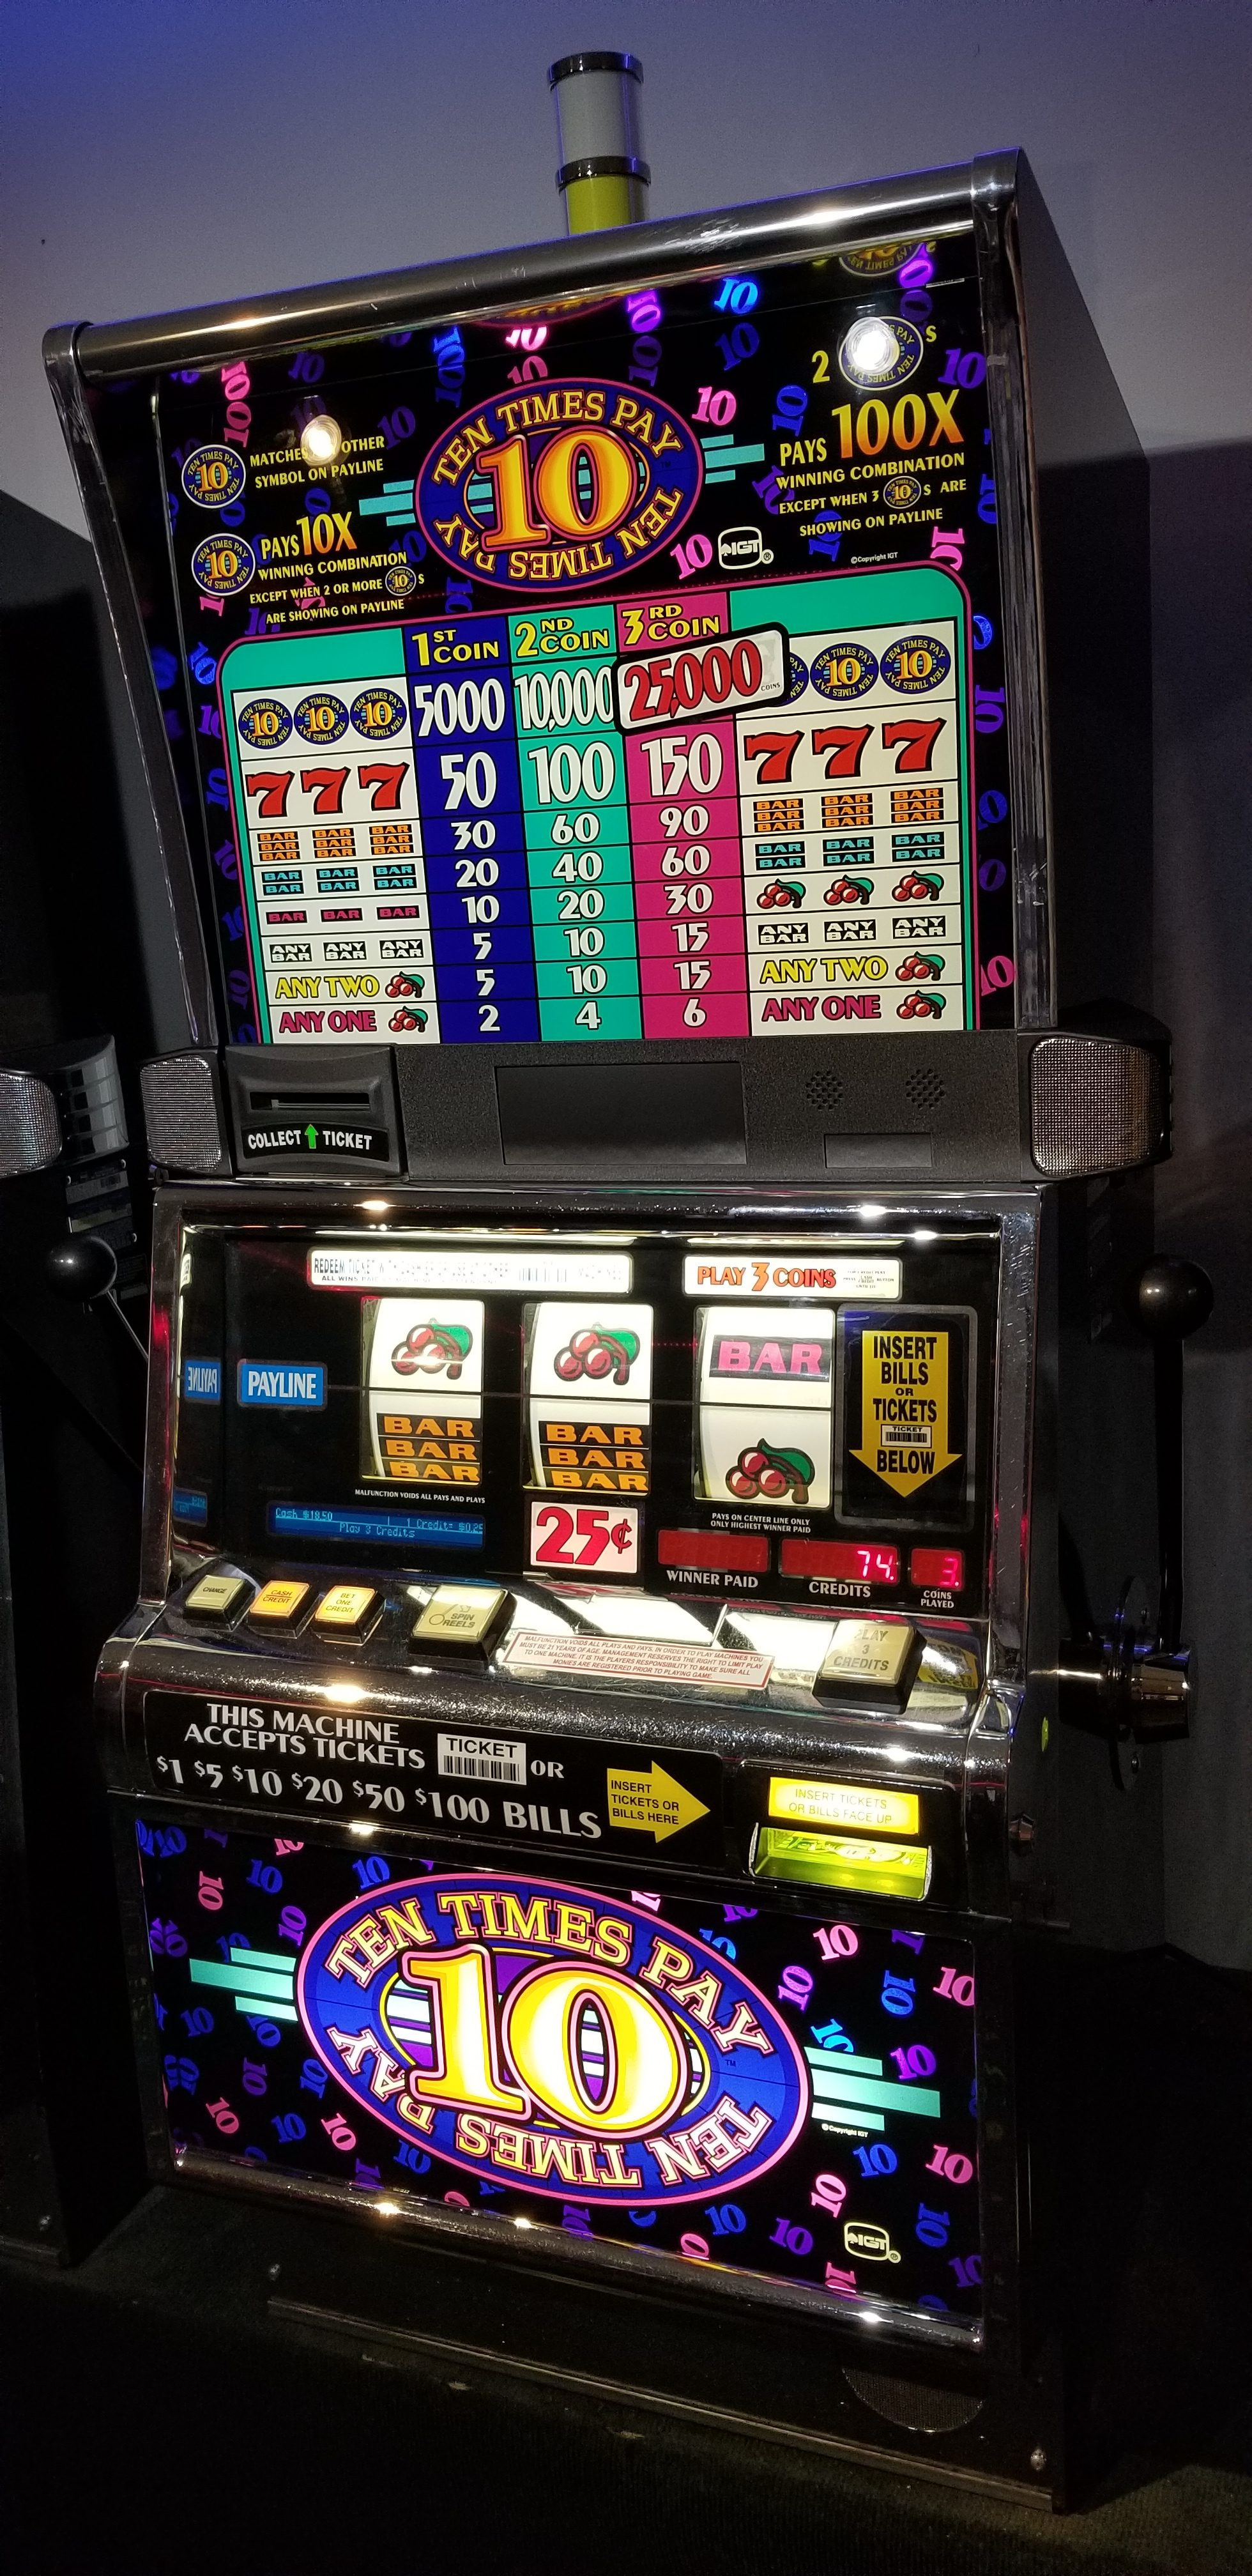 Igt S2000 Ten Times Pay 3 Coin Slot Machine Slot